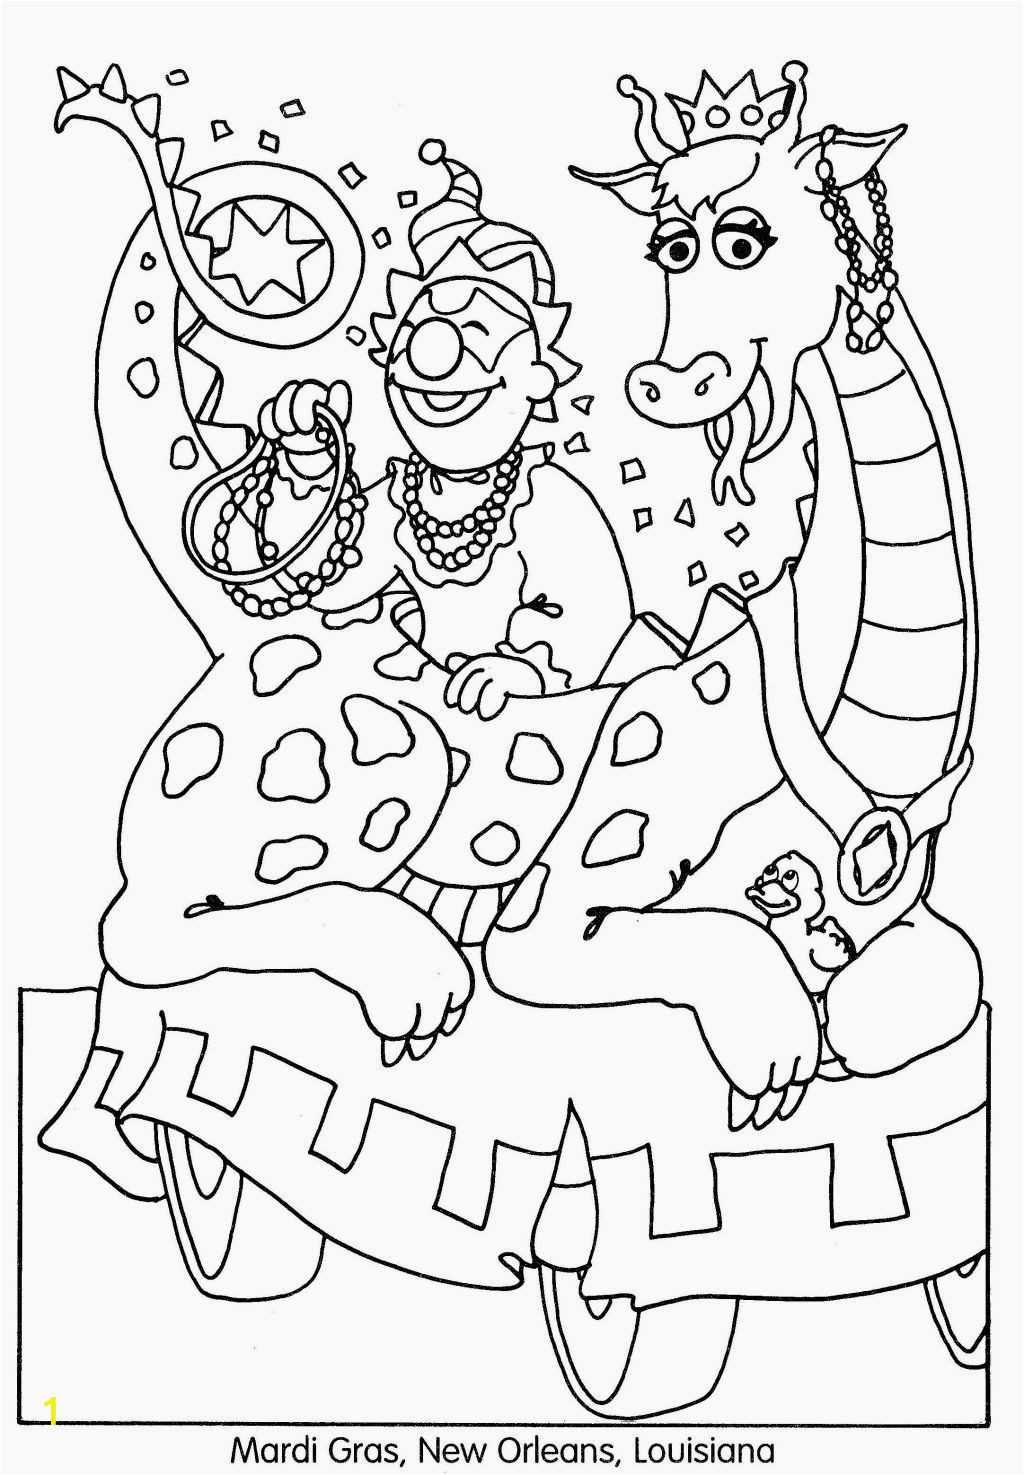 Free Printable Coloring Pages for Mardi Gras Free Printable Mardi Gras Coloring Pages for Kids